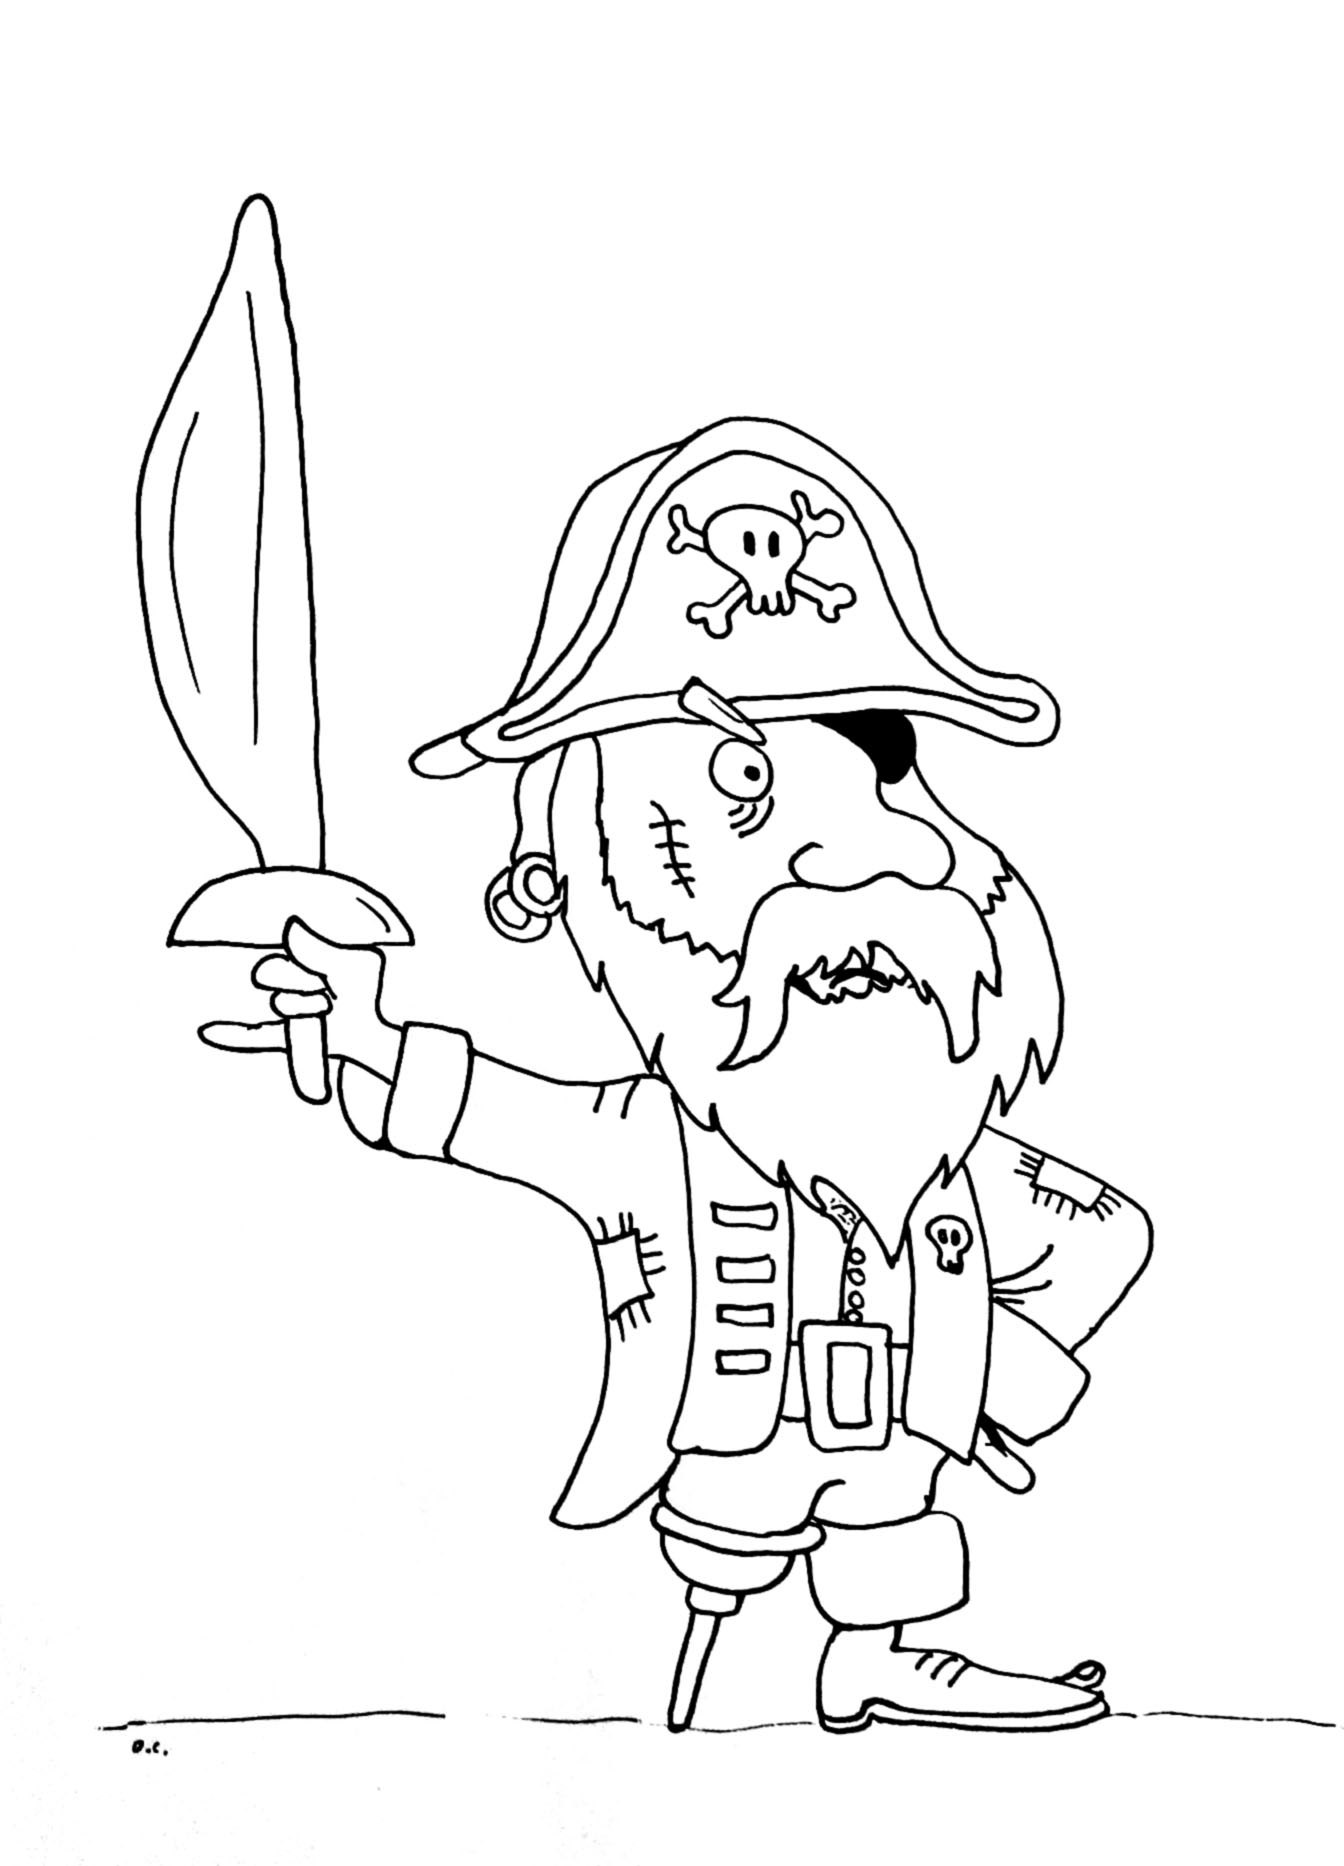 Pirates coloring page with few details for kids